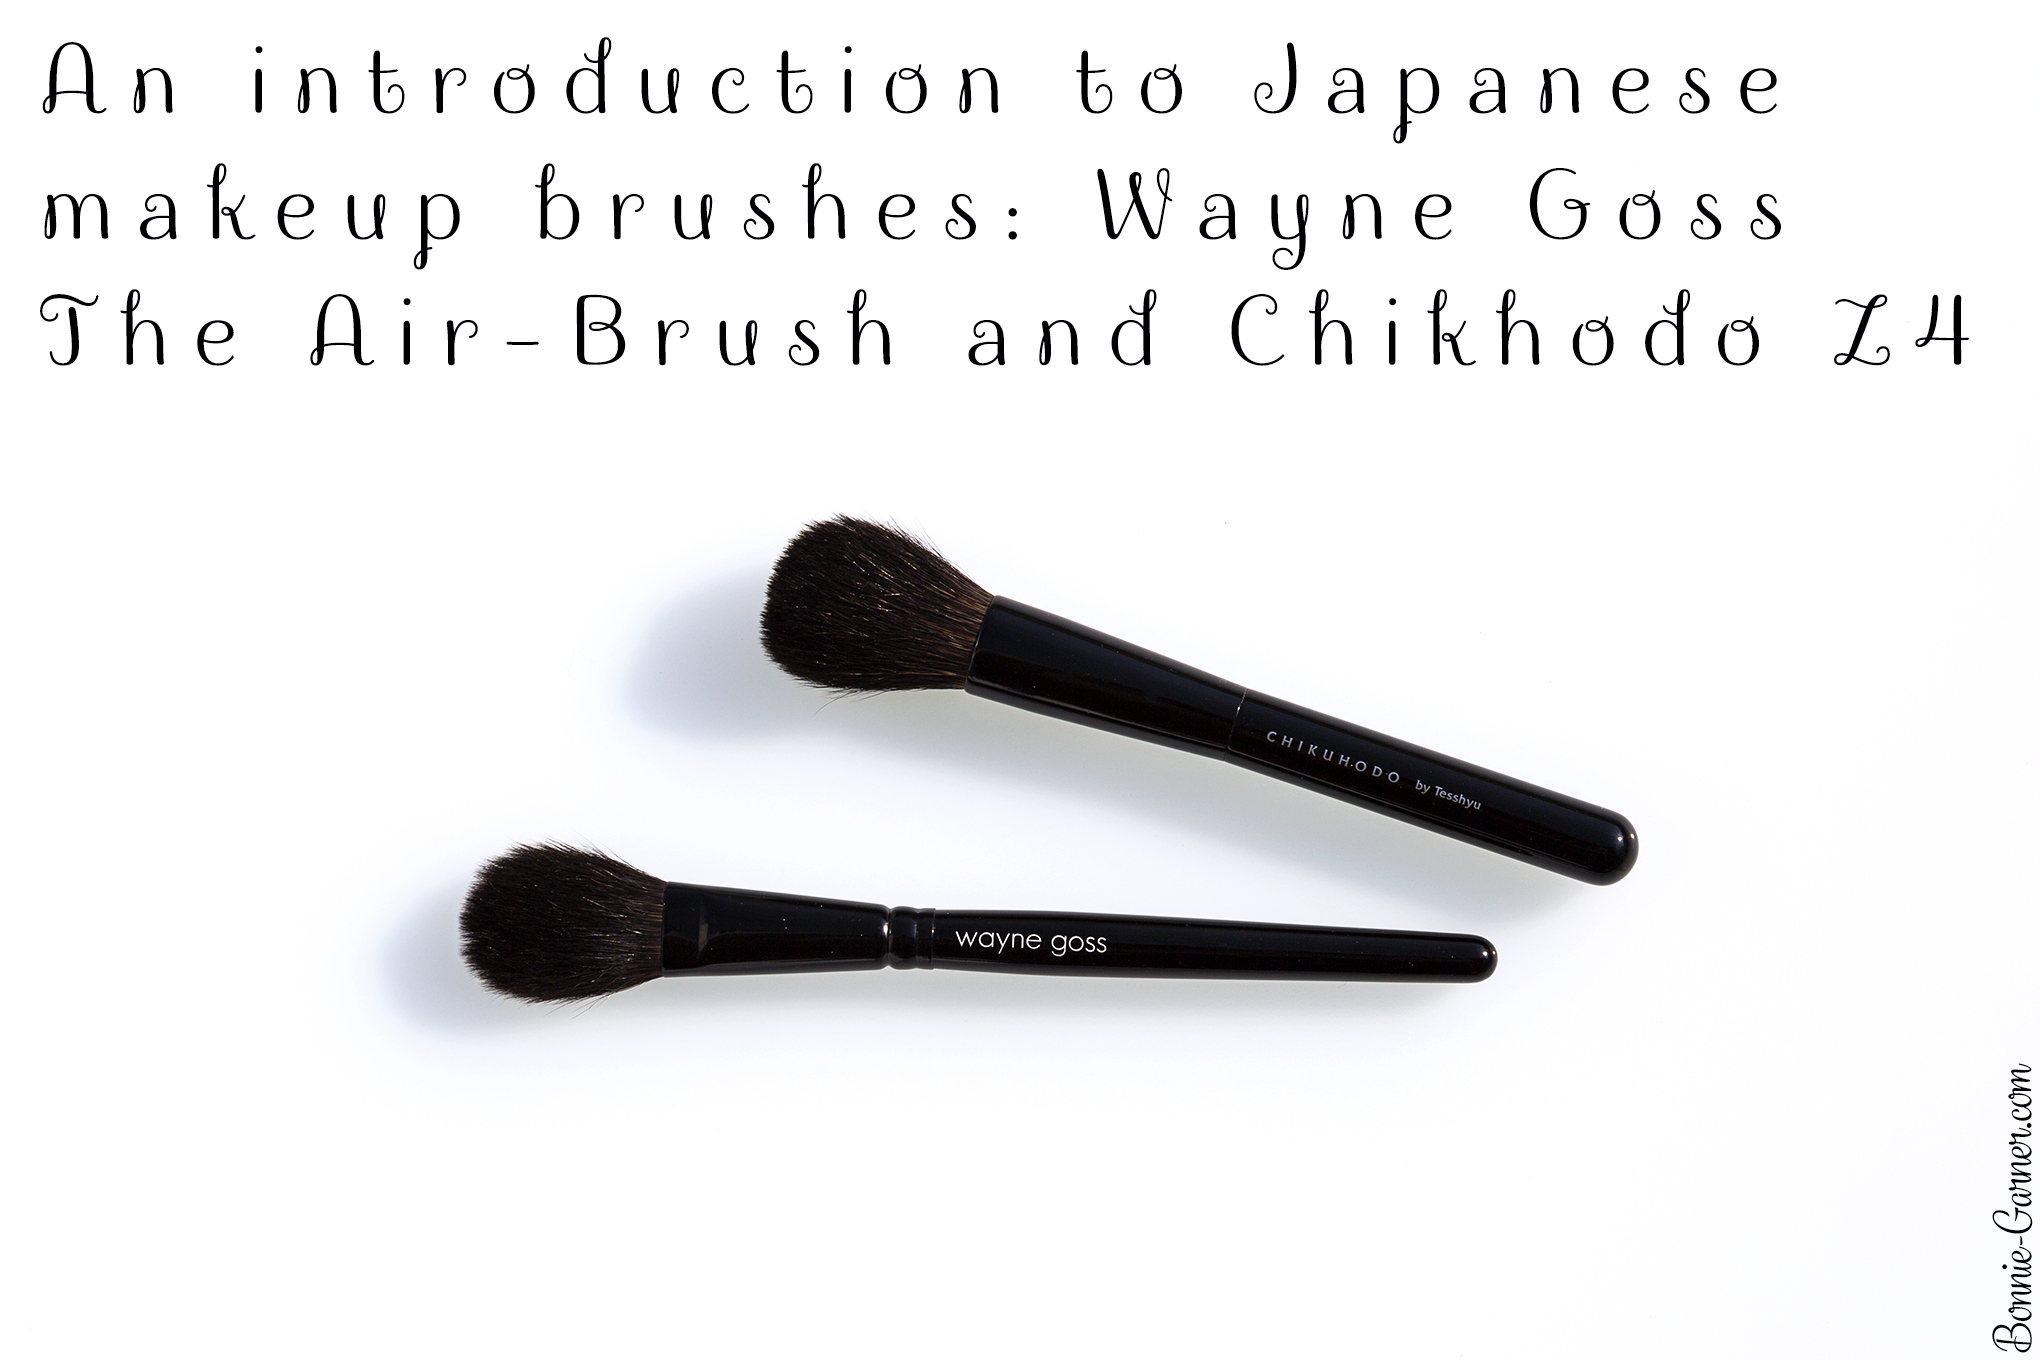 An introduction to Japanese makeup brushes: Wayne Goss The Air-Brush and Chikuhodo Z4